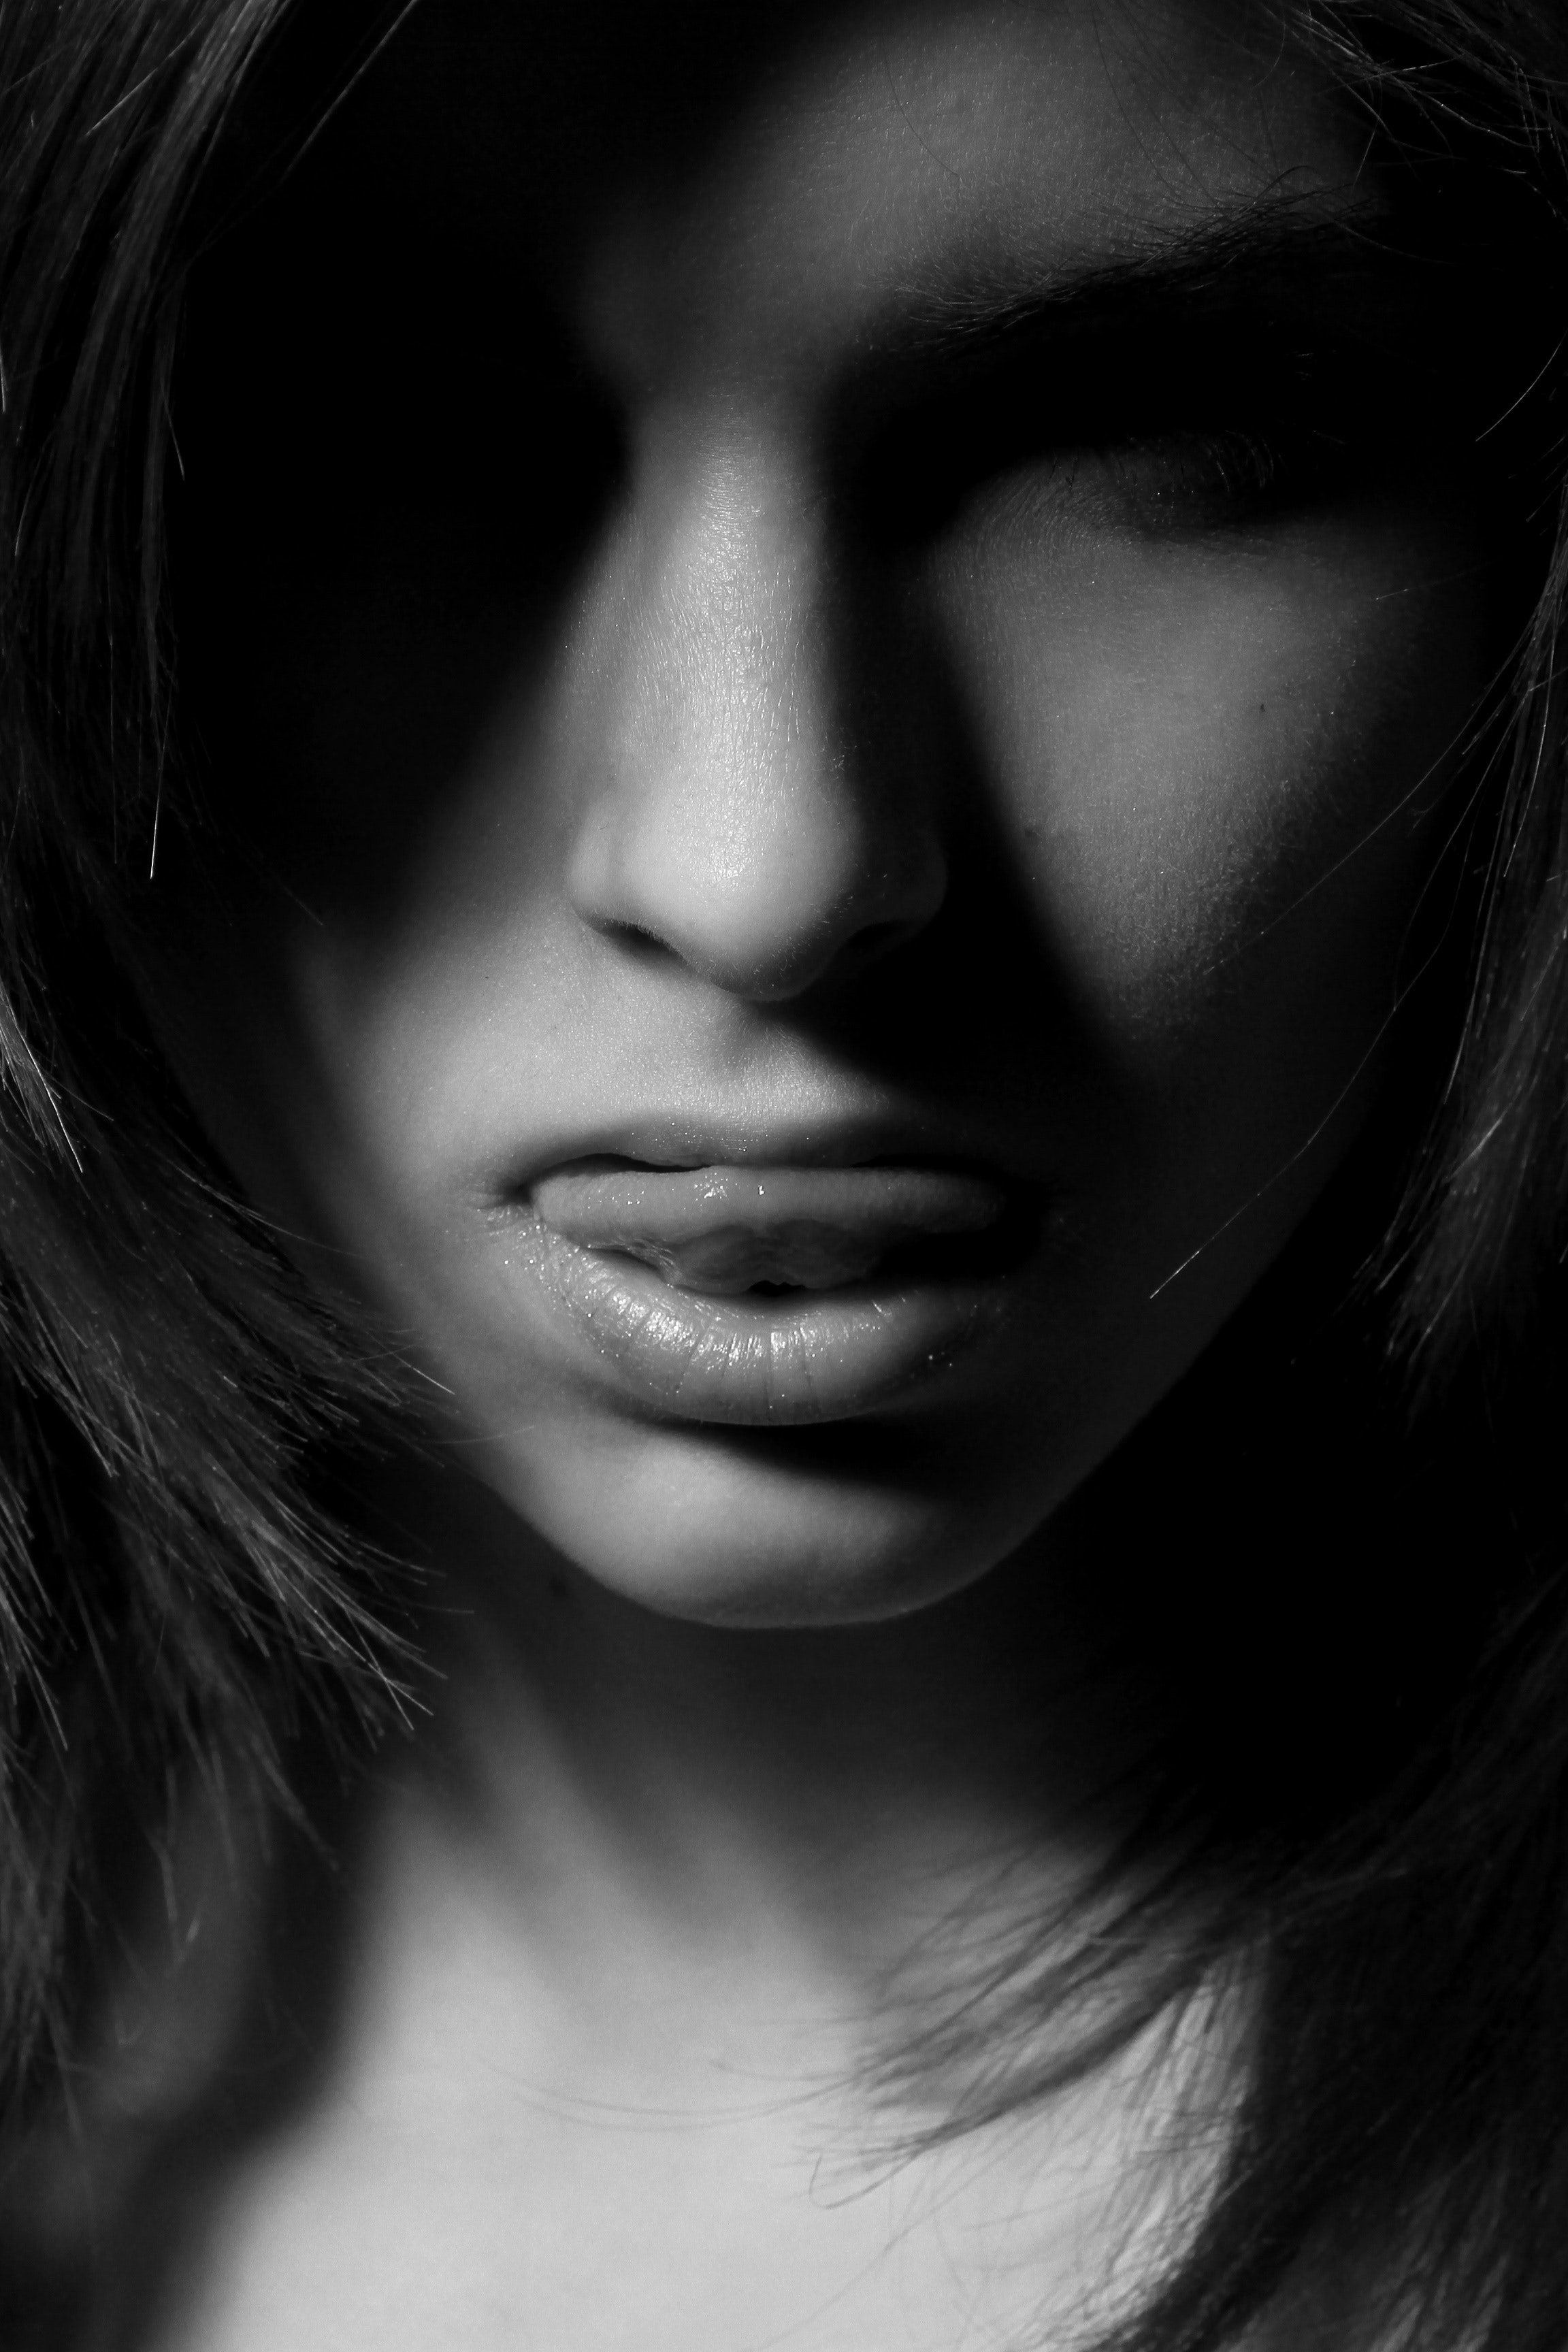 Similar photos grayscale photography of womans